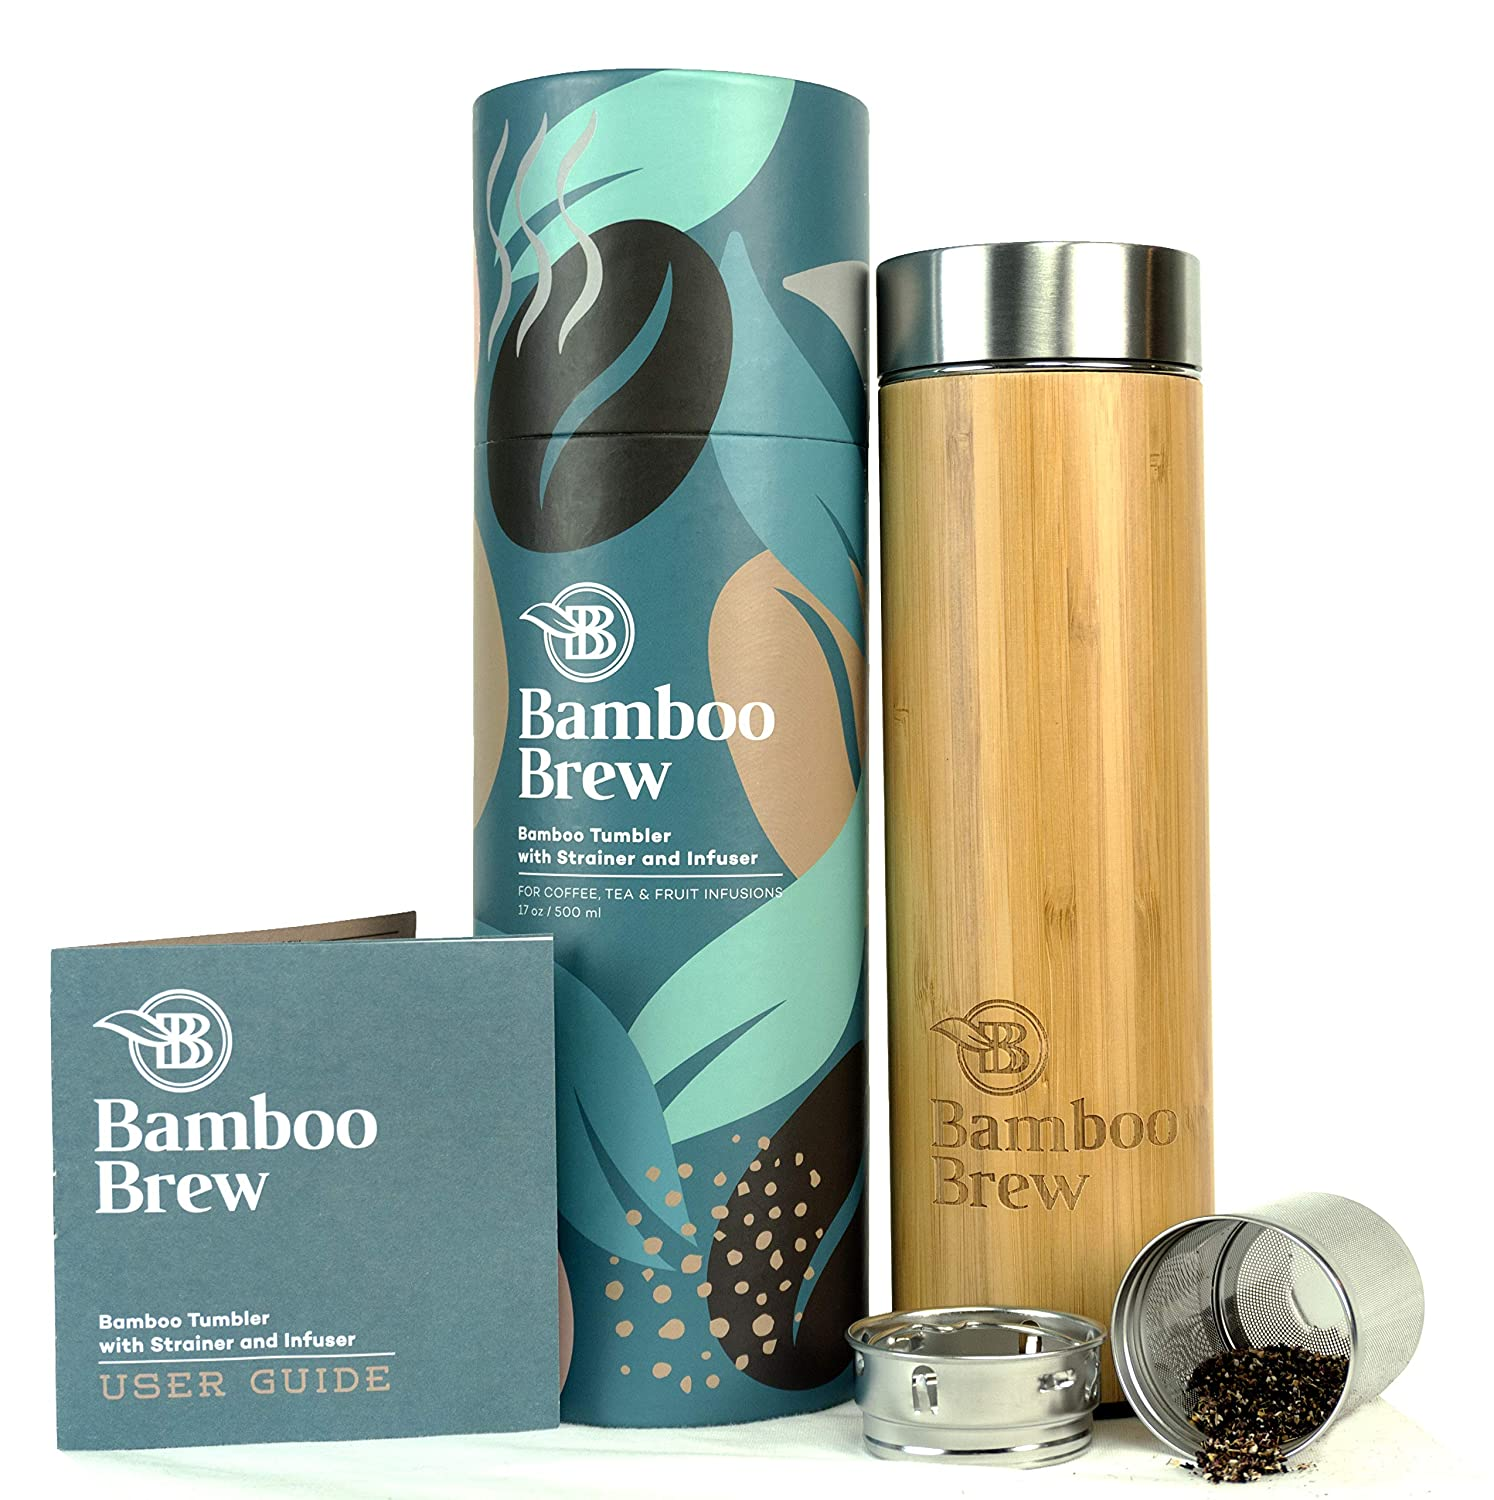 Bamboo Tumbler with Infuser & Strainer 17oz | Stainless Steel Coffee & Tea Flask | Double Wall Vacuum Insulated Travel Mug | Loose Leaf Detox Brew & Fruit Infusions | Brand New Gorgeous Packaging